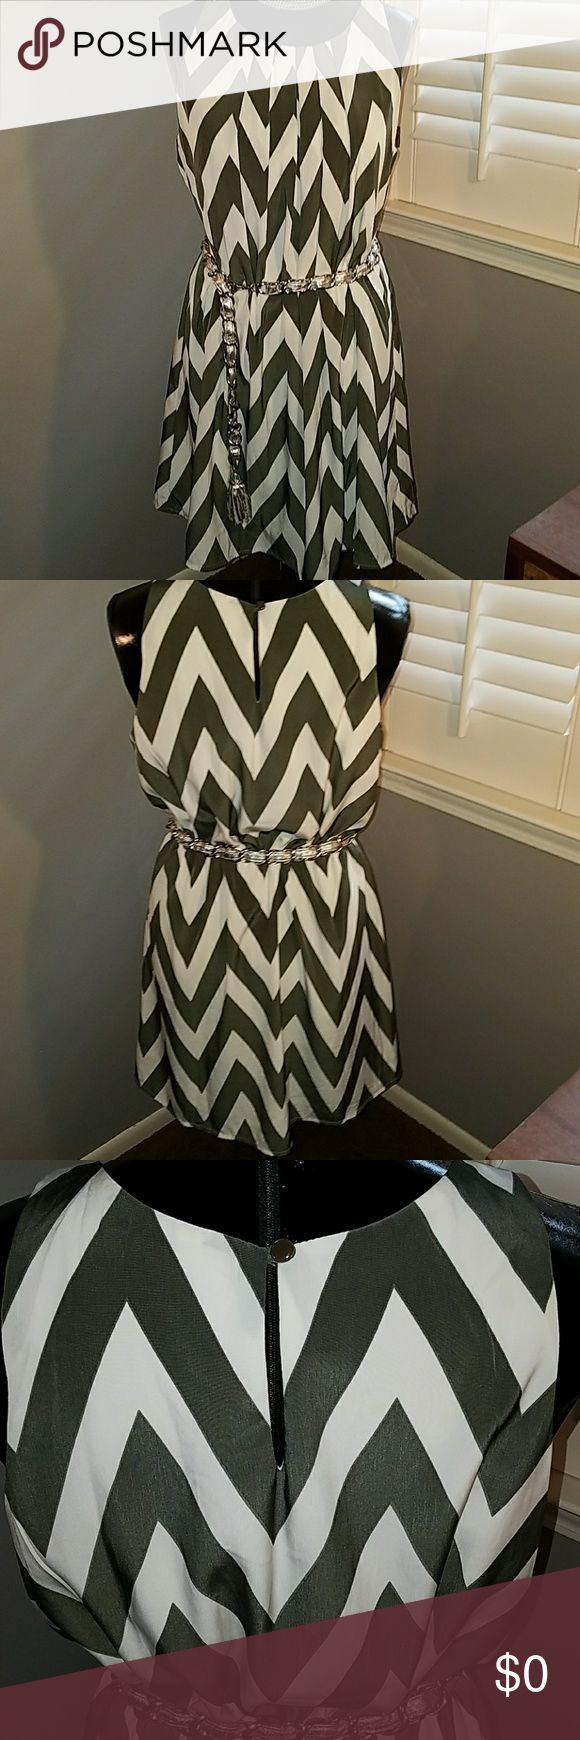 Pink Owl gray & white Chevron Tent trapeze dress L Can be worn with or without a belt, dark gray and white chevron would coordinate well with a turquoise or coral belt and accessories. Loops at waist side for a small belt. (belt & choker not for sale) Fully lined. Excellent condition! Pink Owl Apparel Dresses